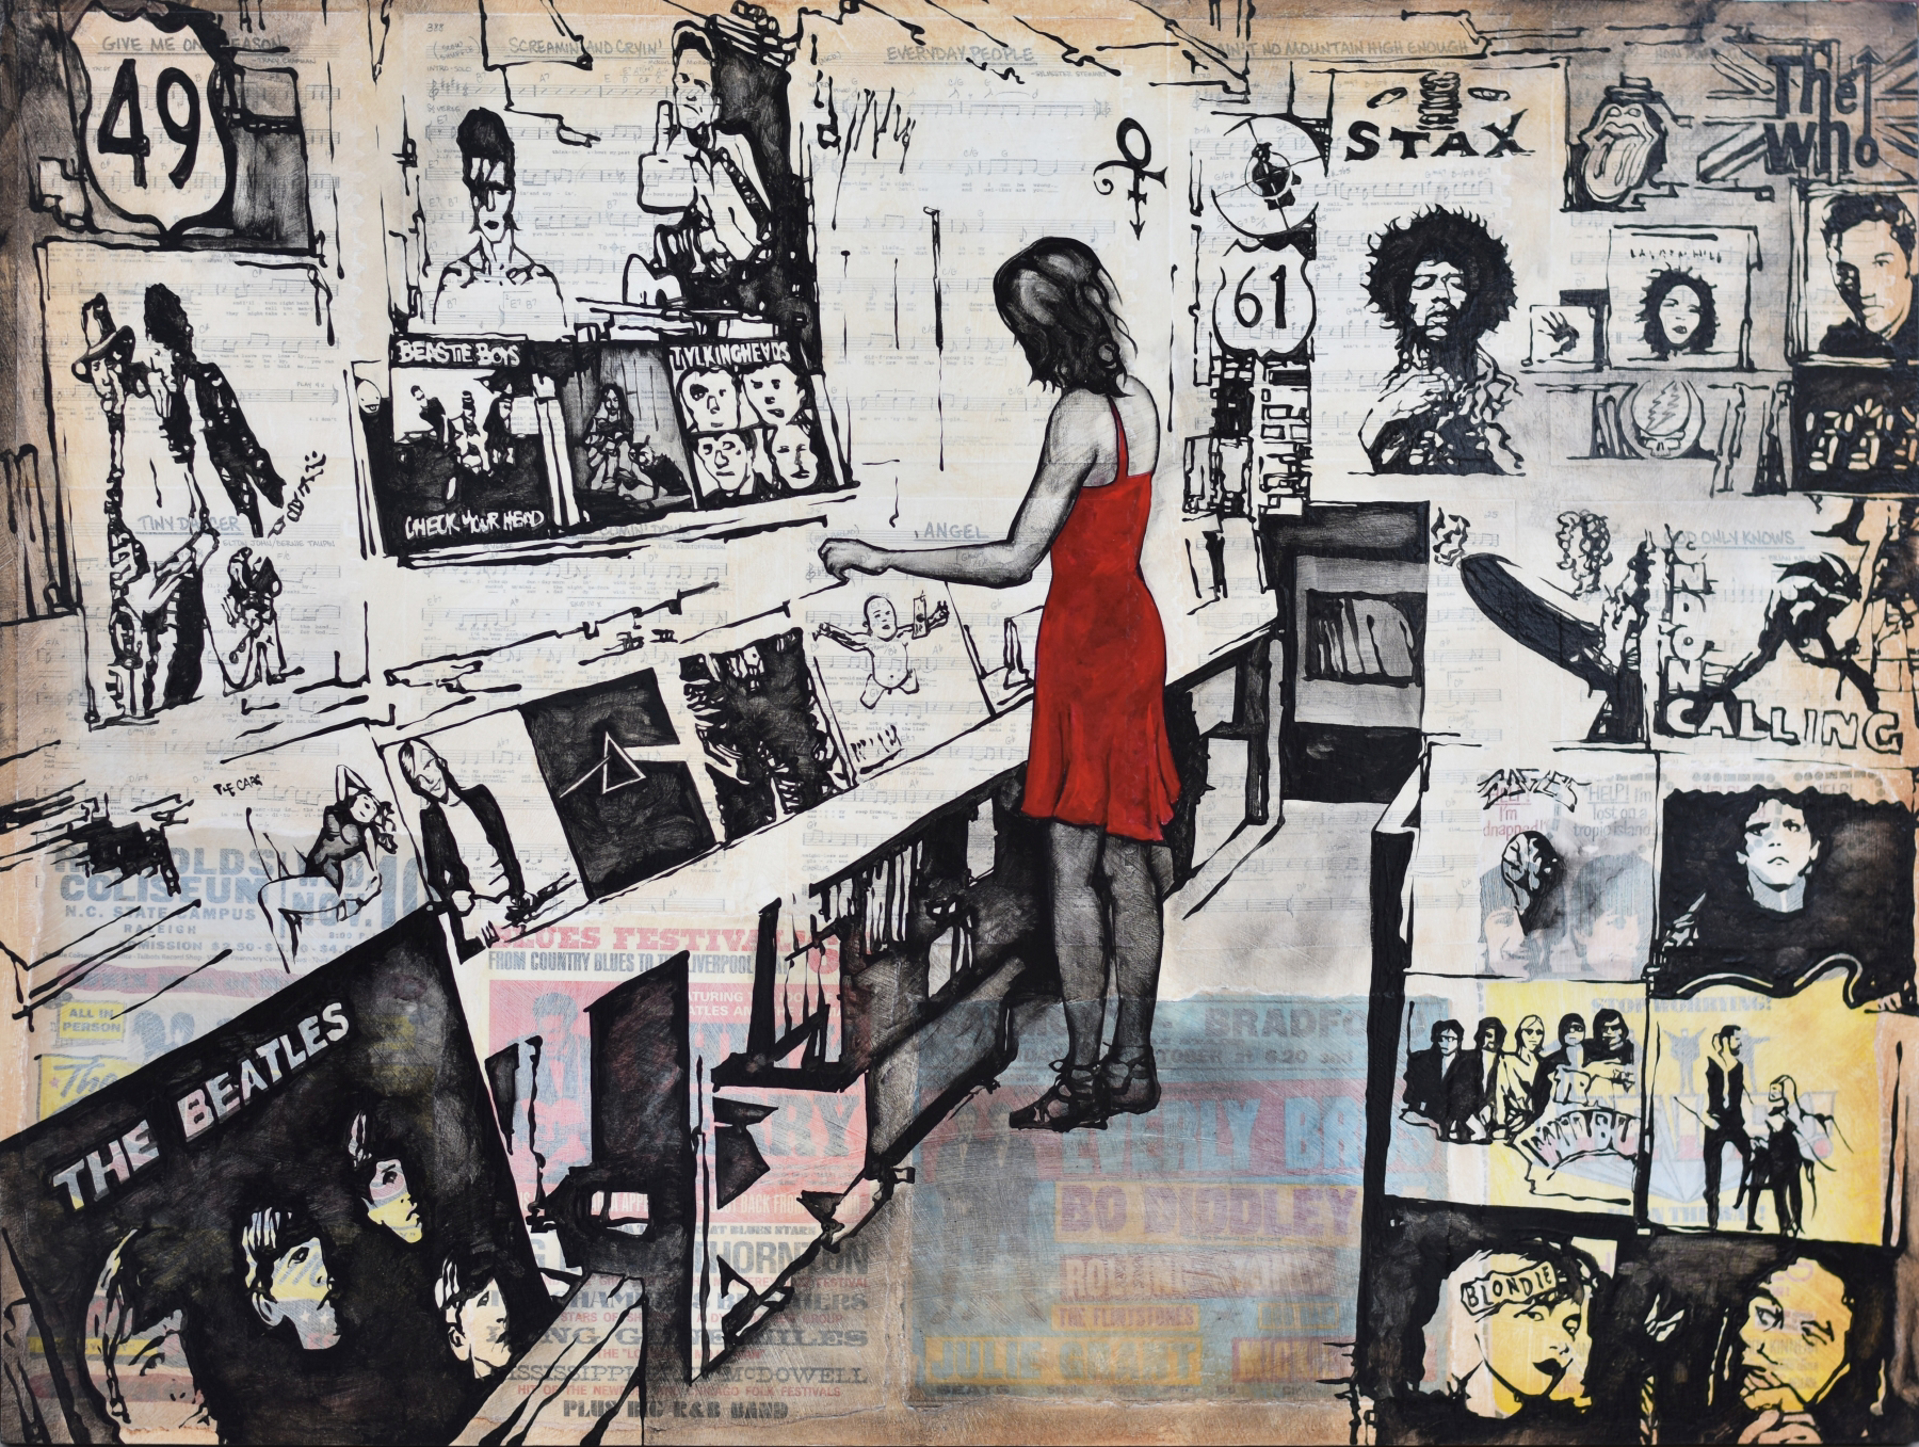 The Record Shop by Will Armstrong